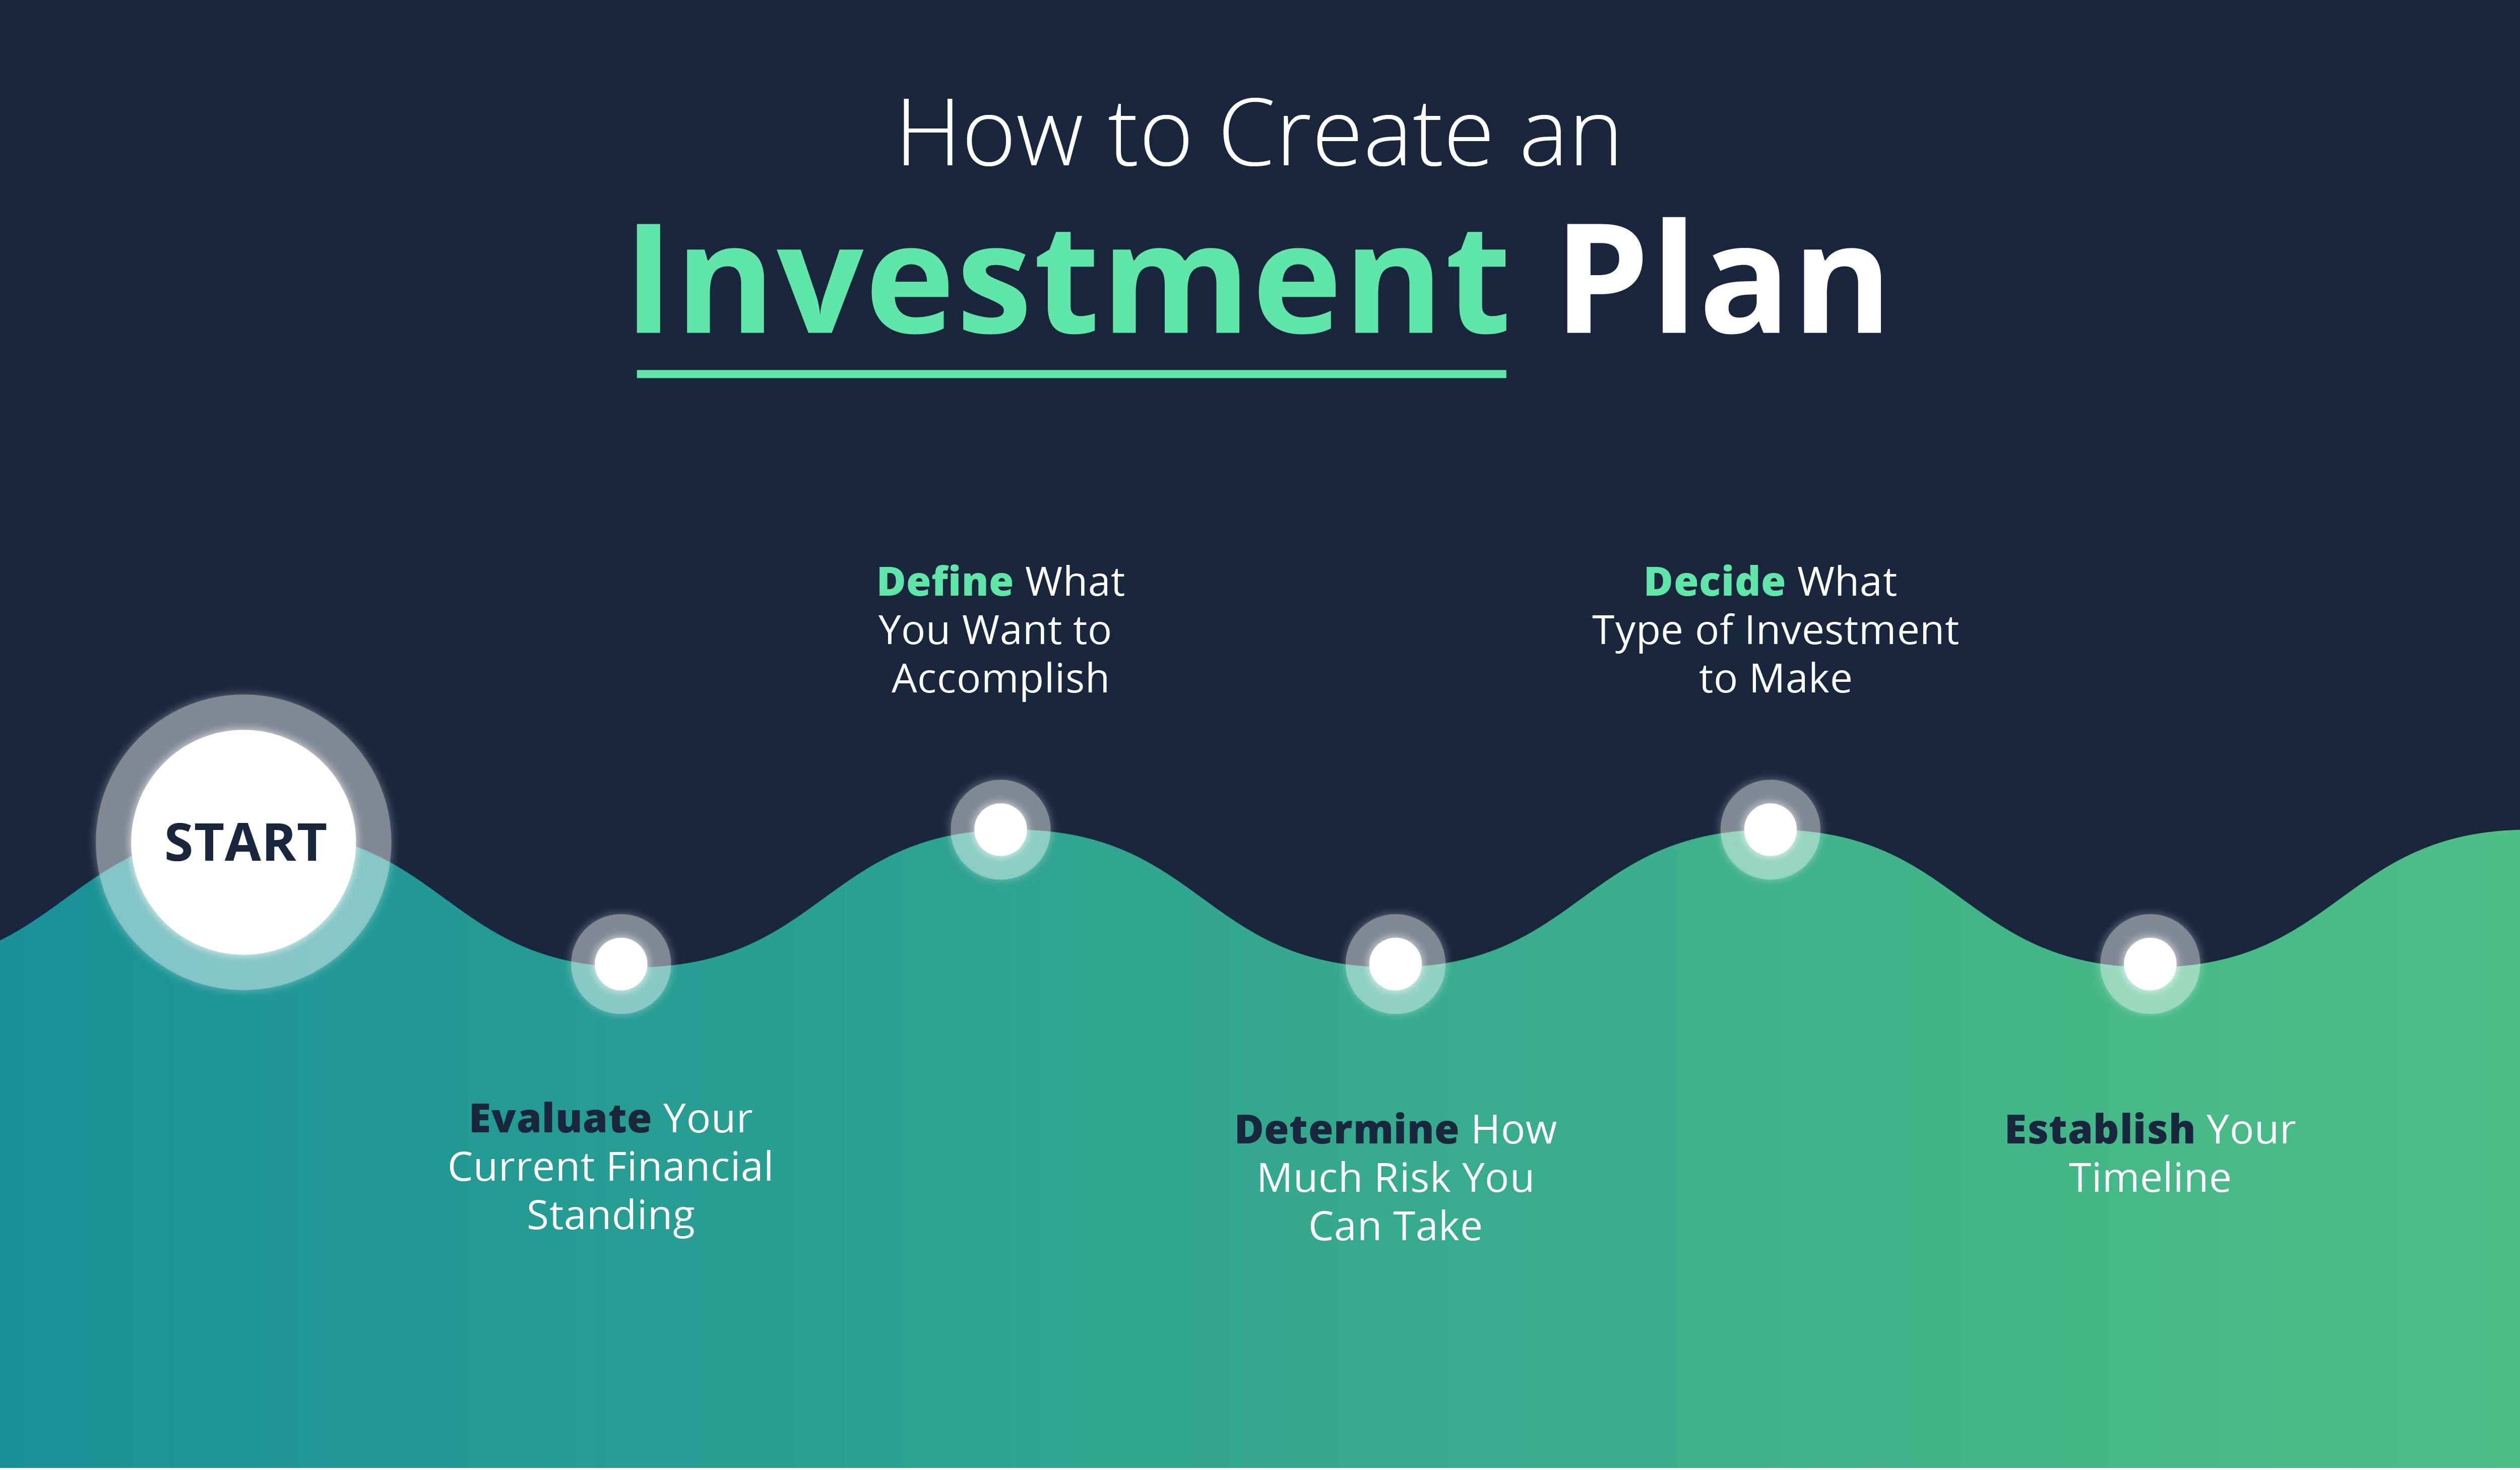 How to start a investment ni shi wo de da ming xing investment